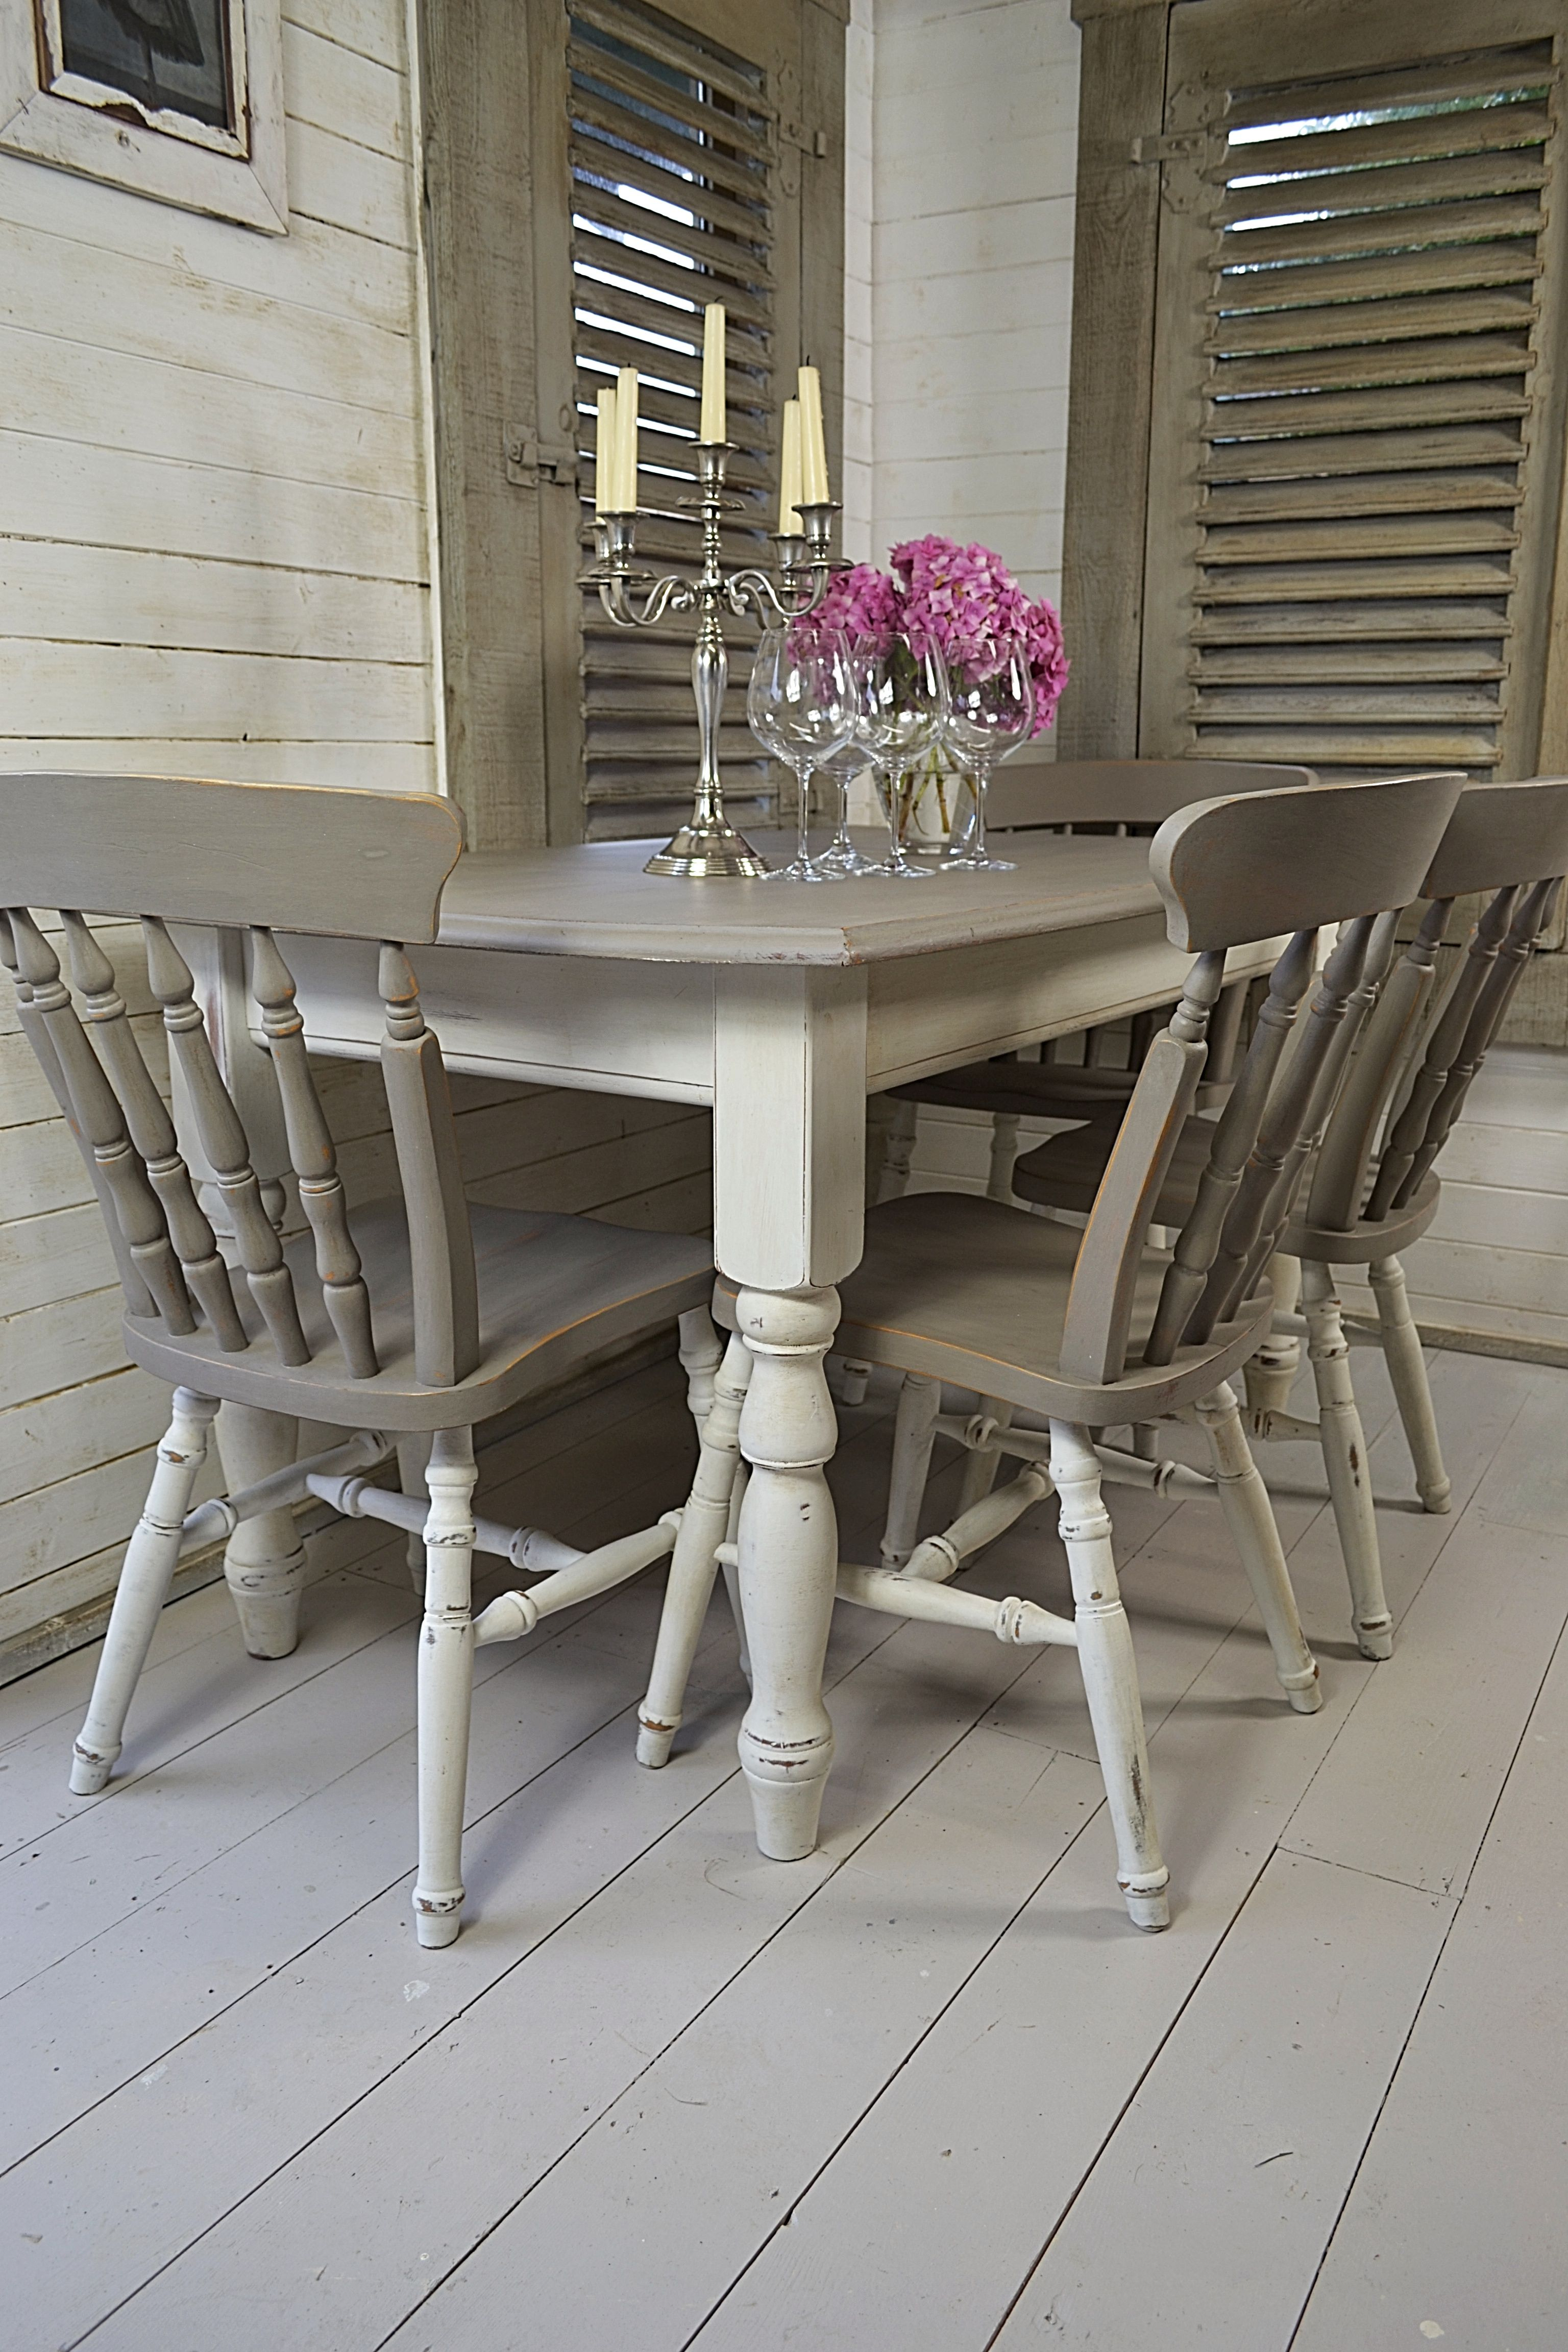 dine in style with our stunning grey and white split